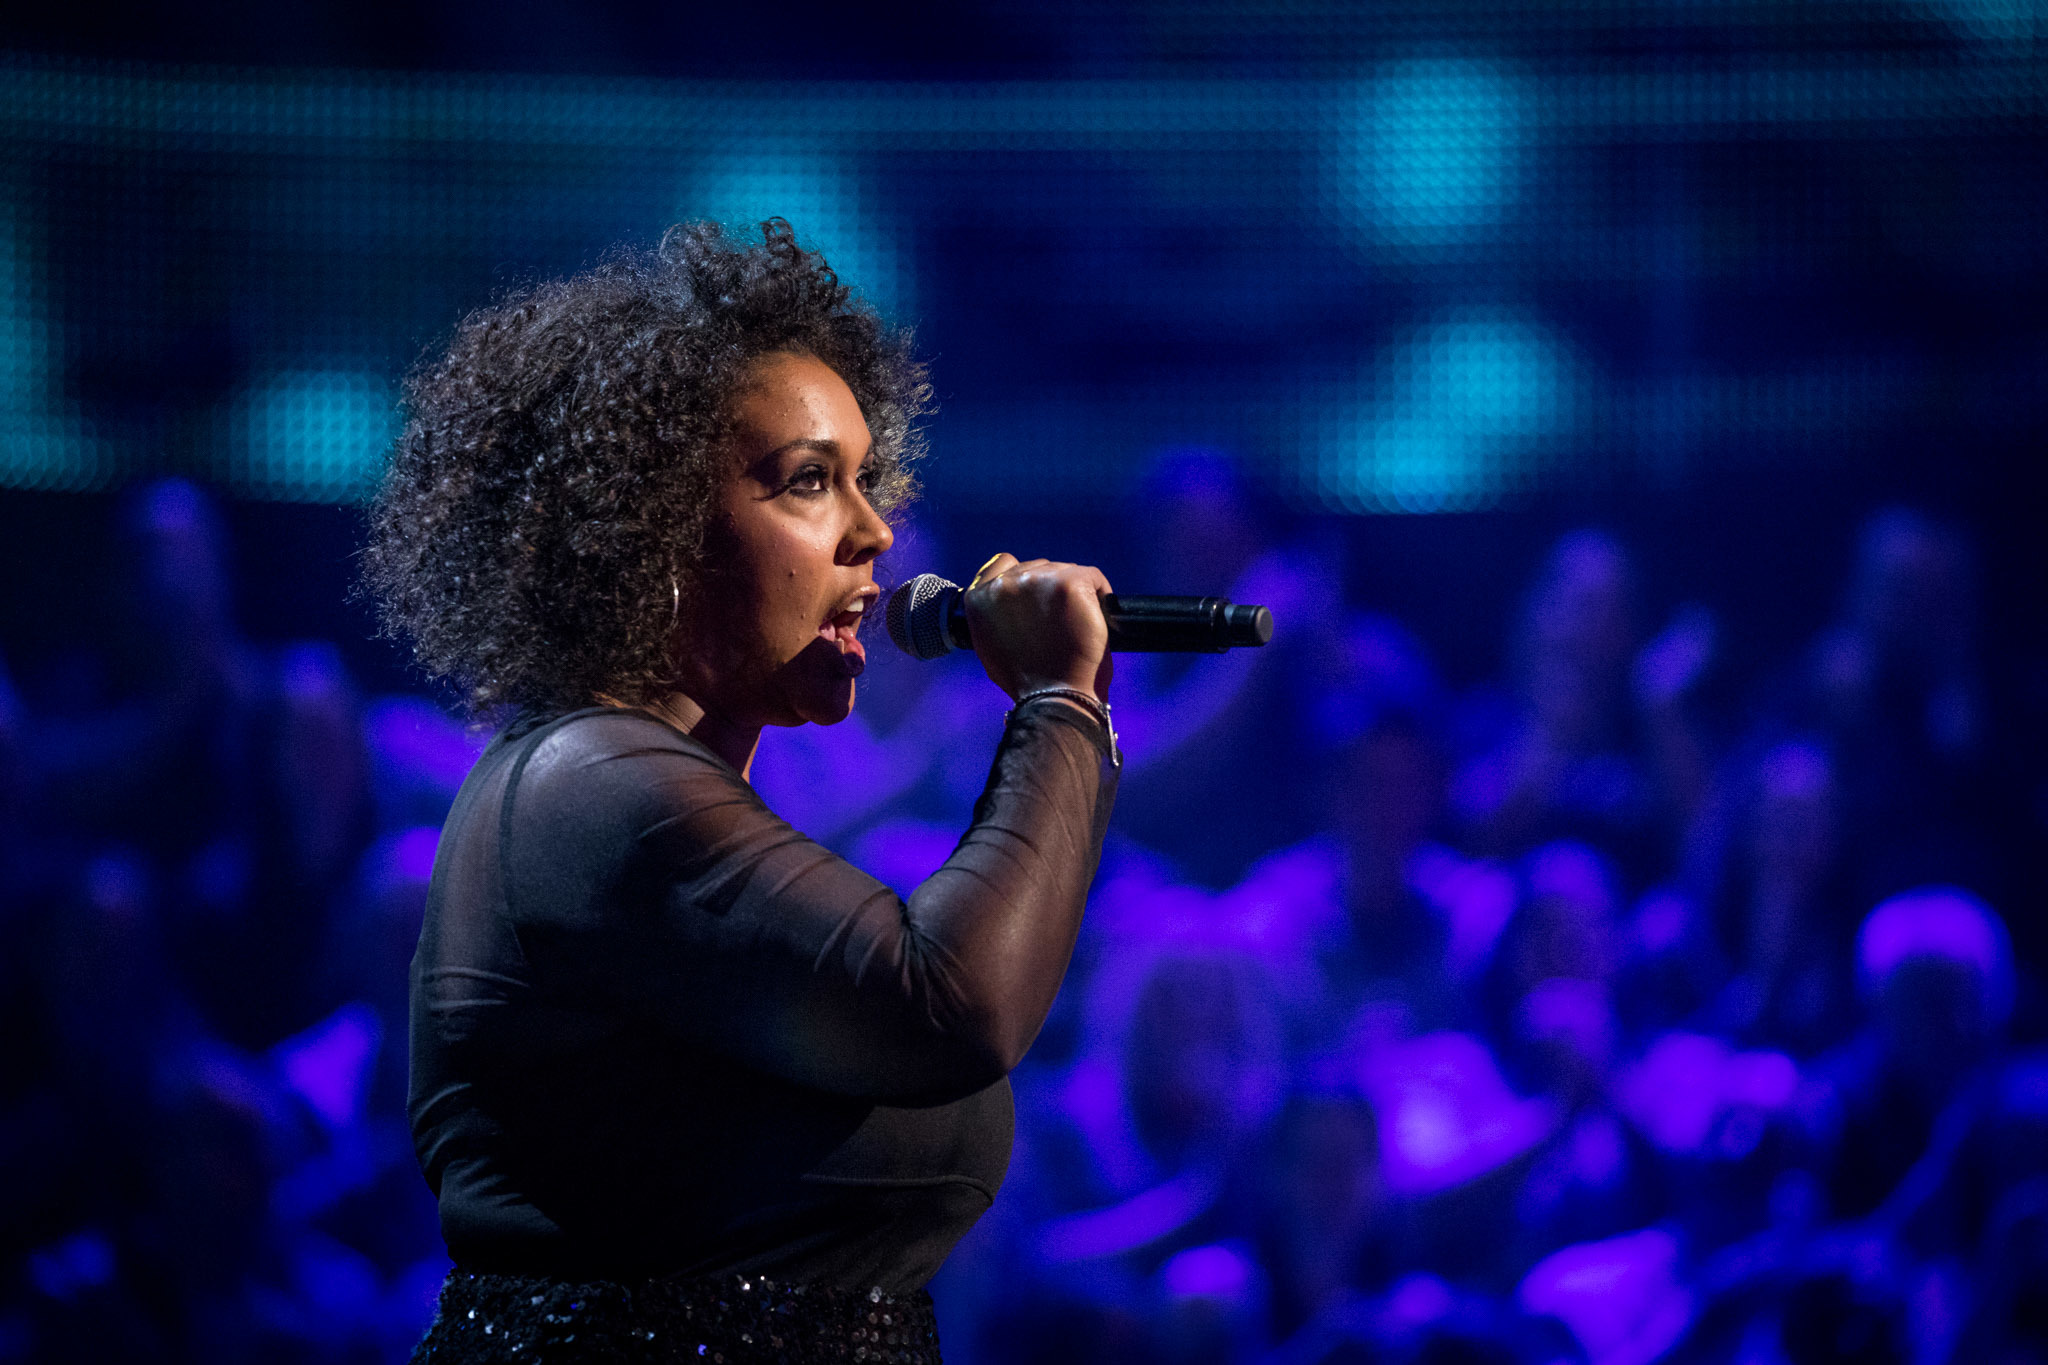 Singer Bernadette Bangura from Bournemouth to appear on All Together Now final